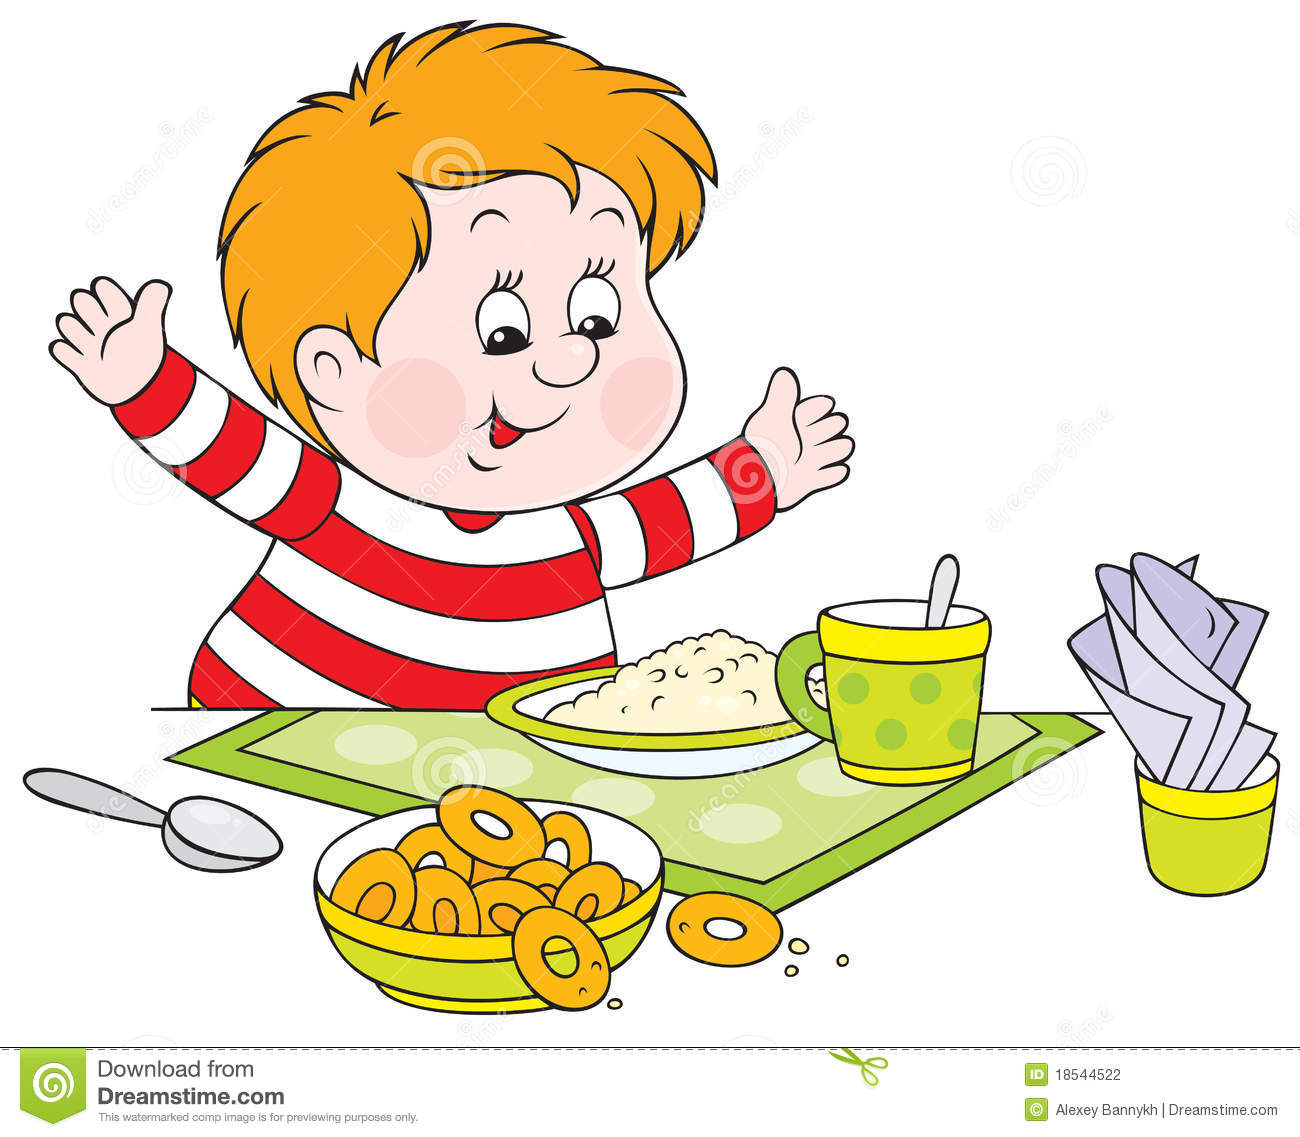 Boy eating breakfast clipart image free 7+ Eating Breakfast Clipart | ClipartLook image free